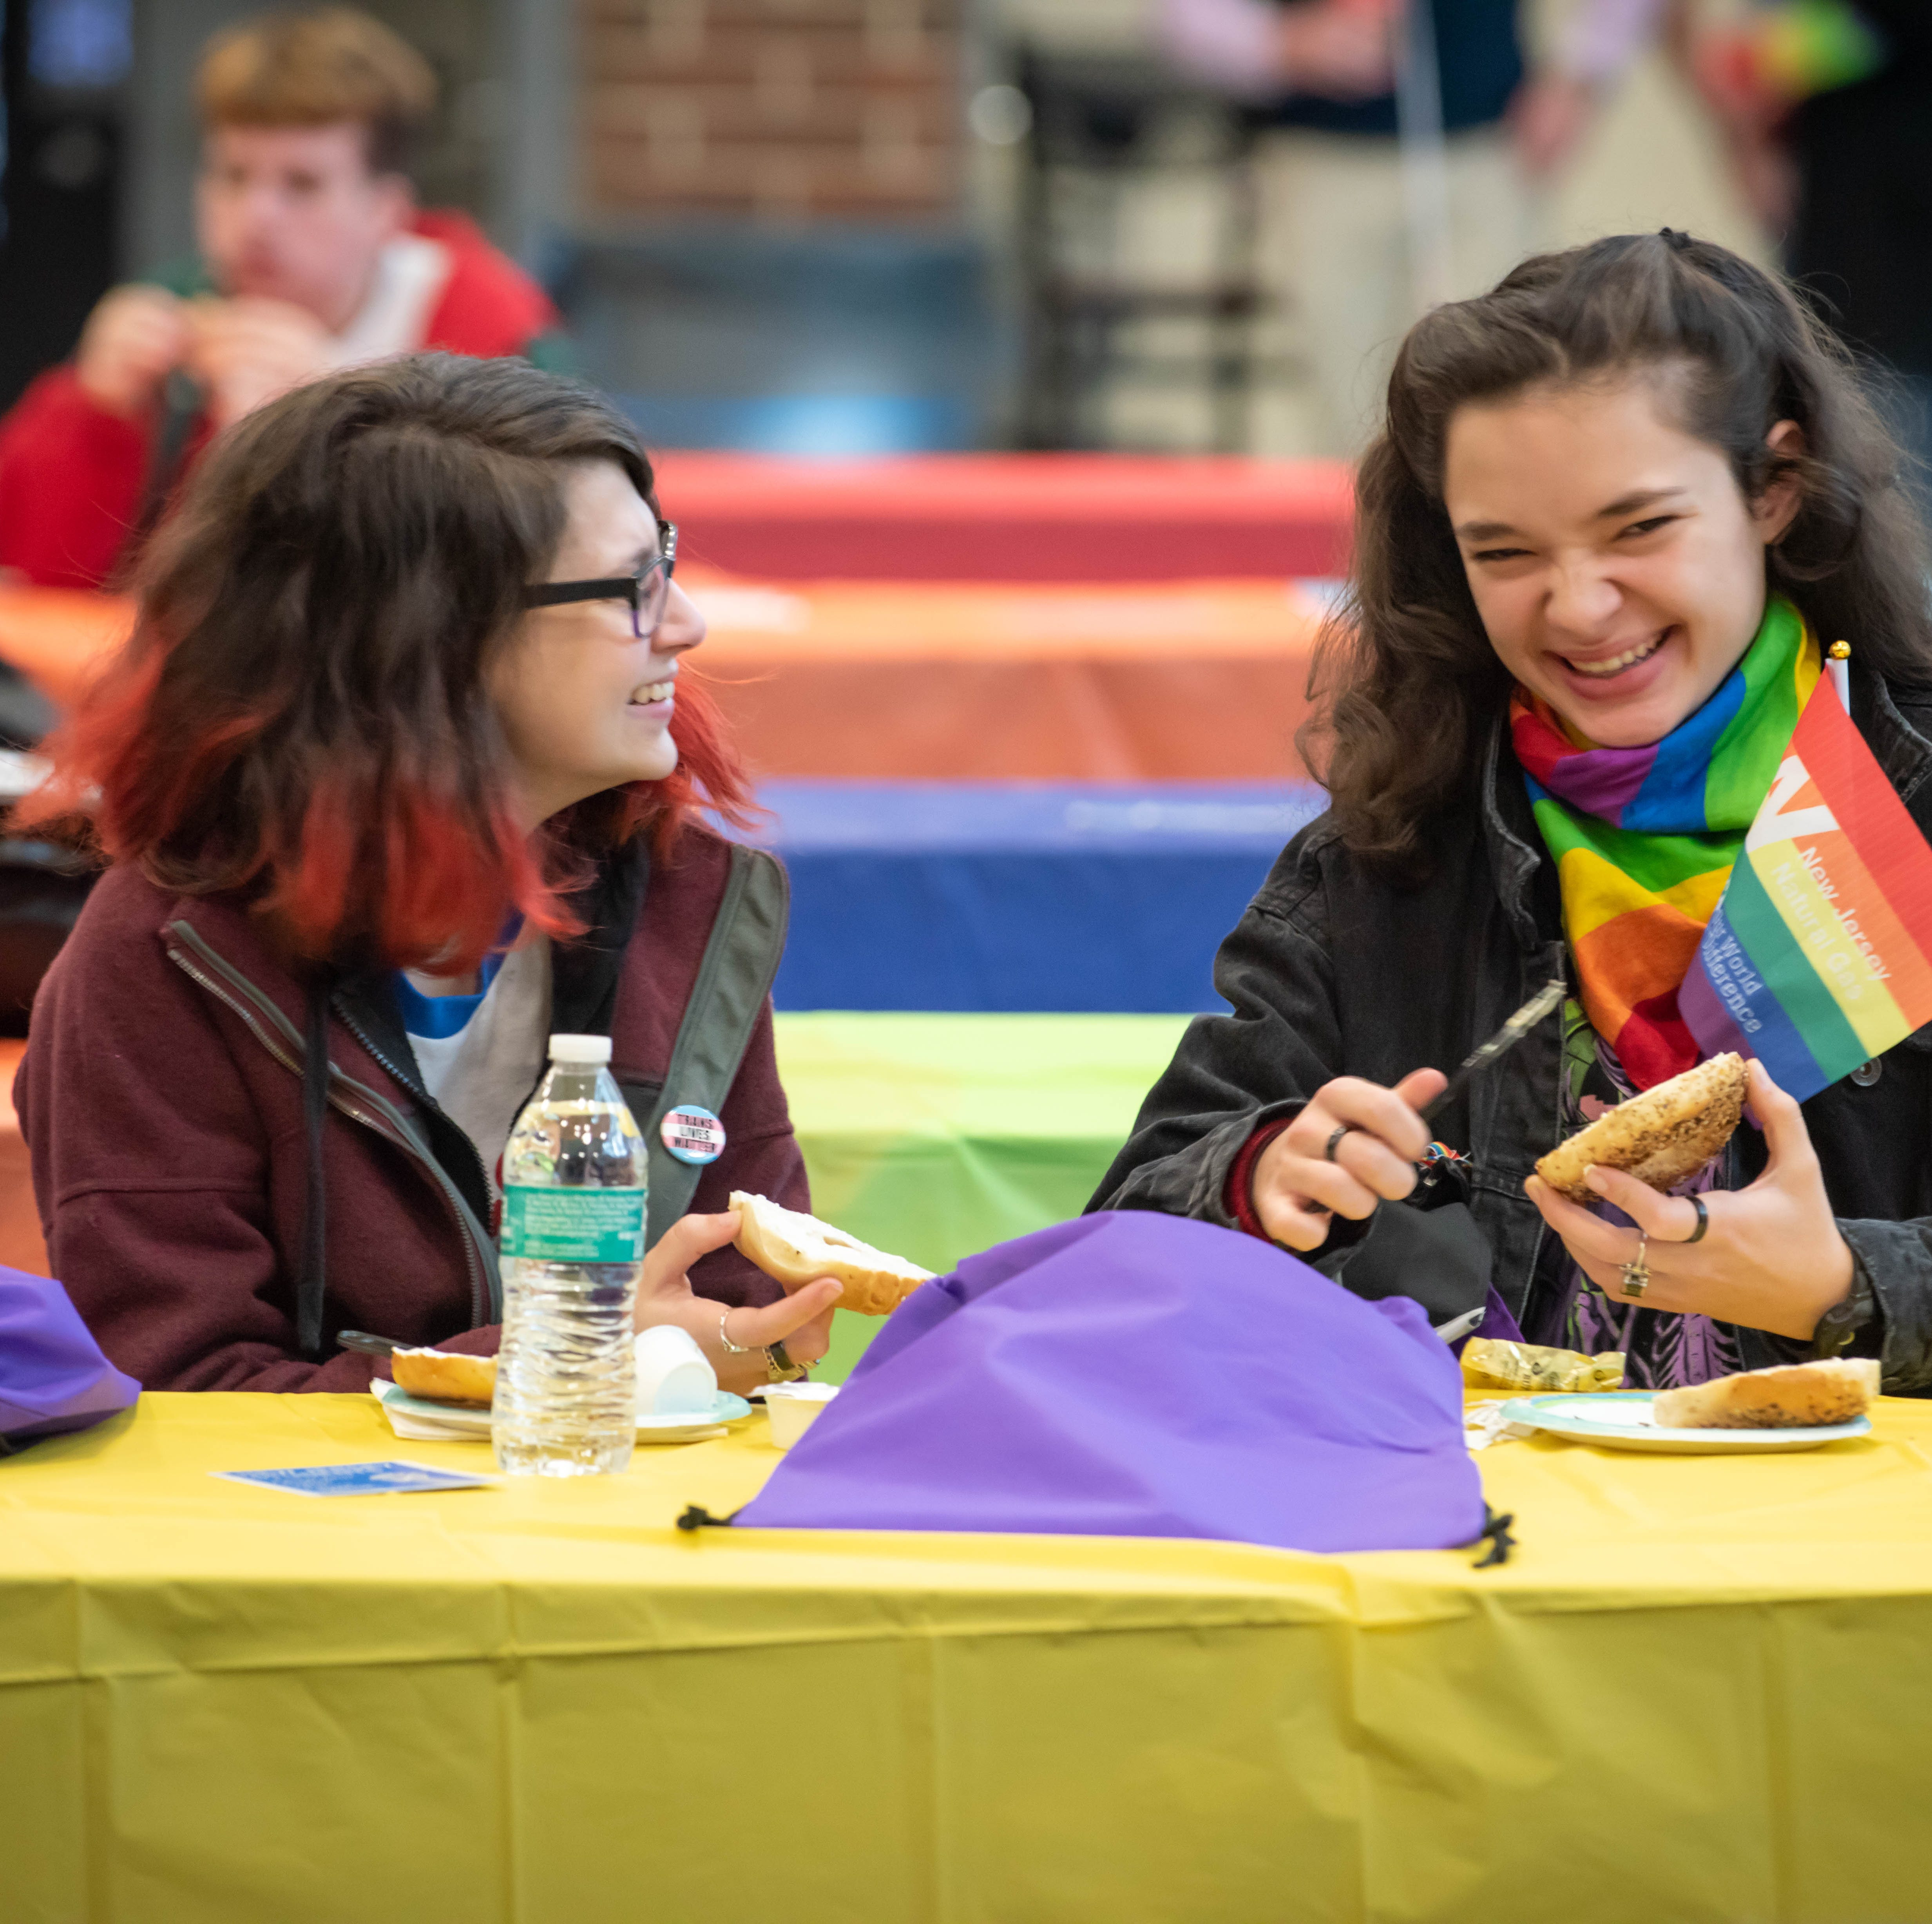 LGBT youth forum in Middletown draws hundreds